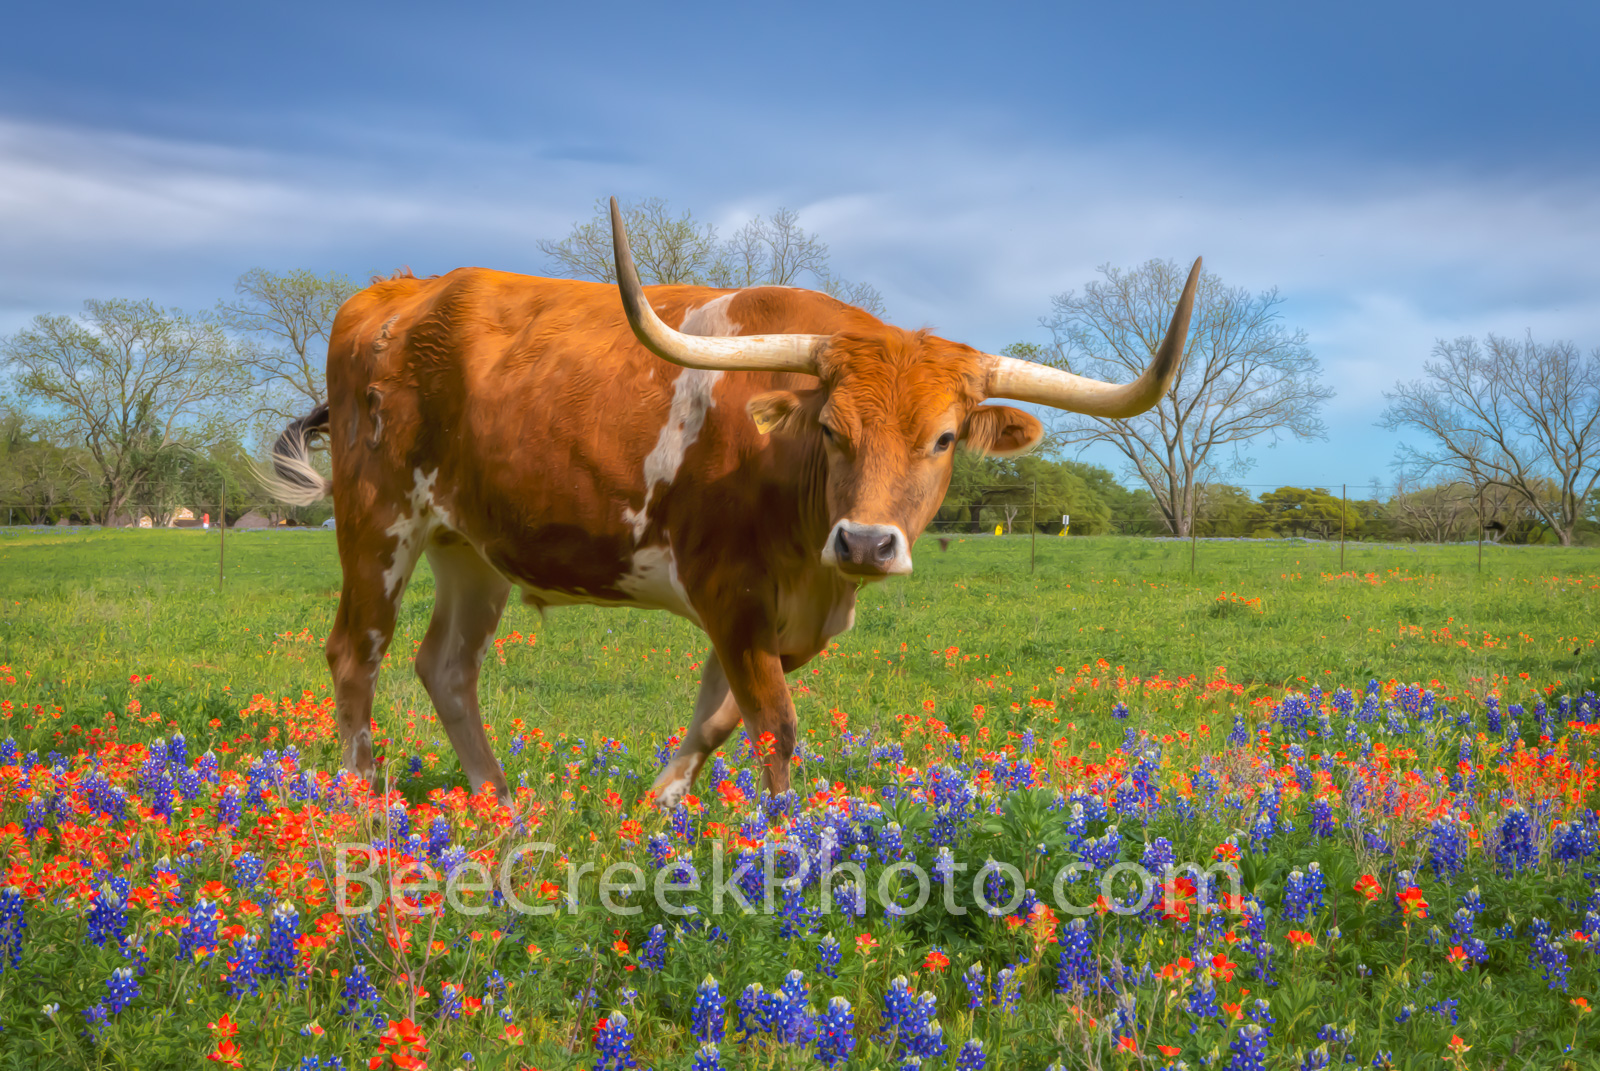 bluebonnets, texas bluebonnets, indian paintbrush, wildflowers, texas wildflowers, longhorns, Longhorns in Wildflowers, texas hill country,  field of bluebonnets. cattle, herd, steers, horns, hill cou, photo